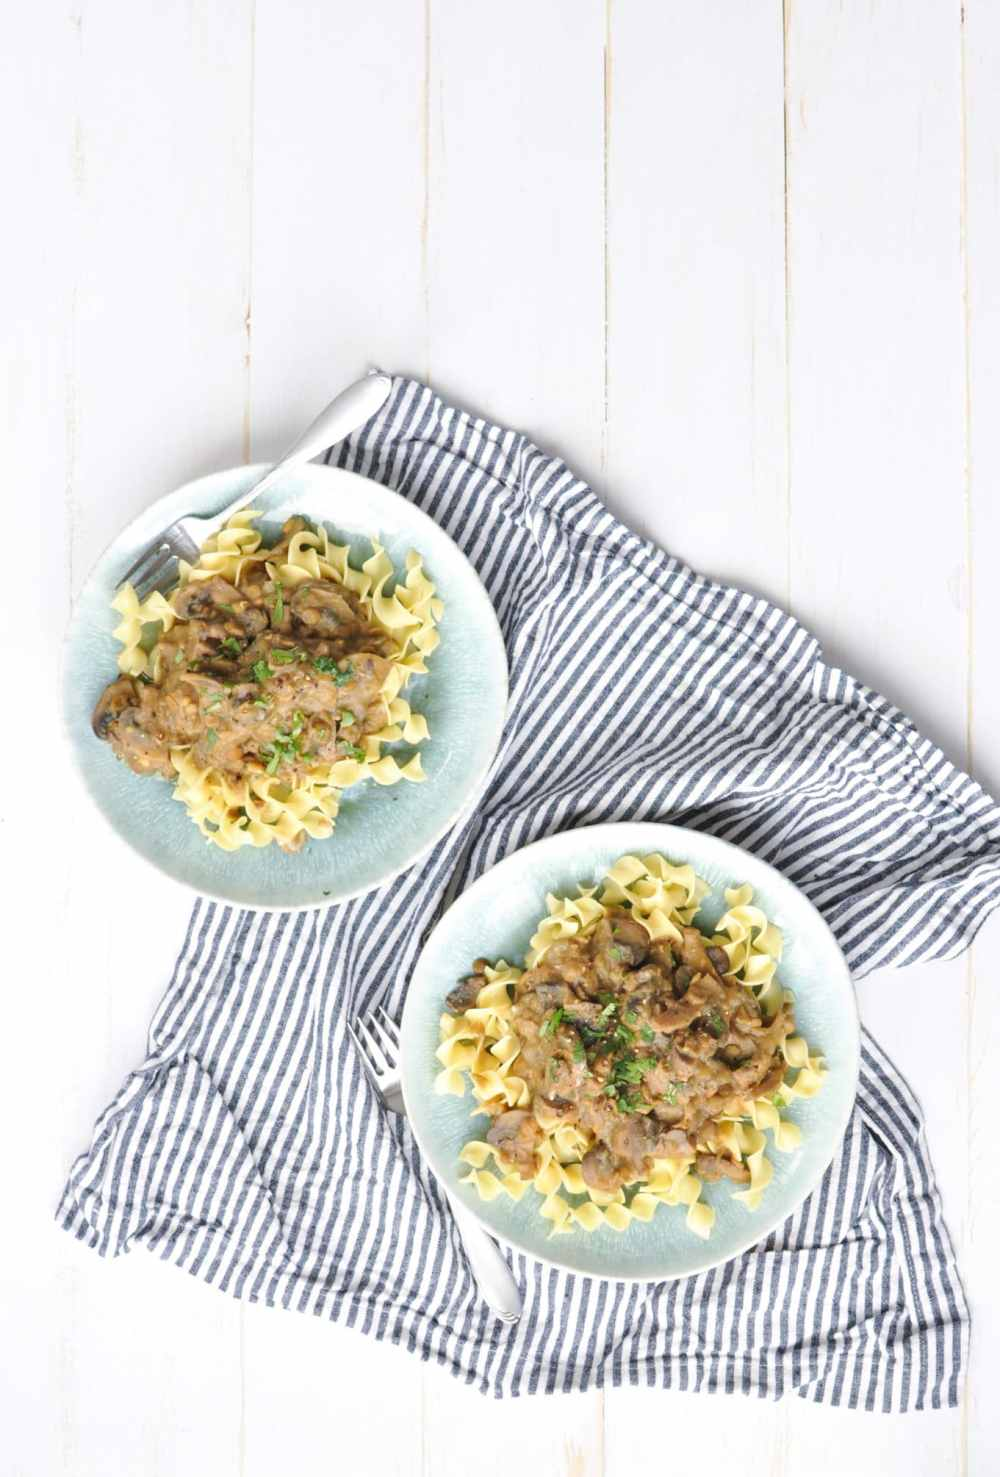 Two plates with lentil stroganoff over pasta